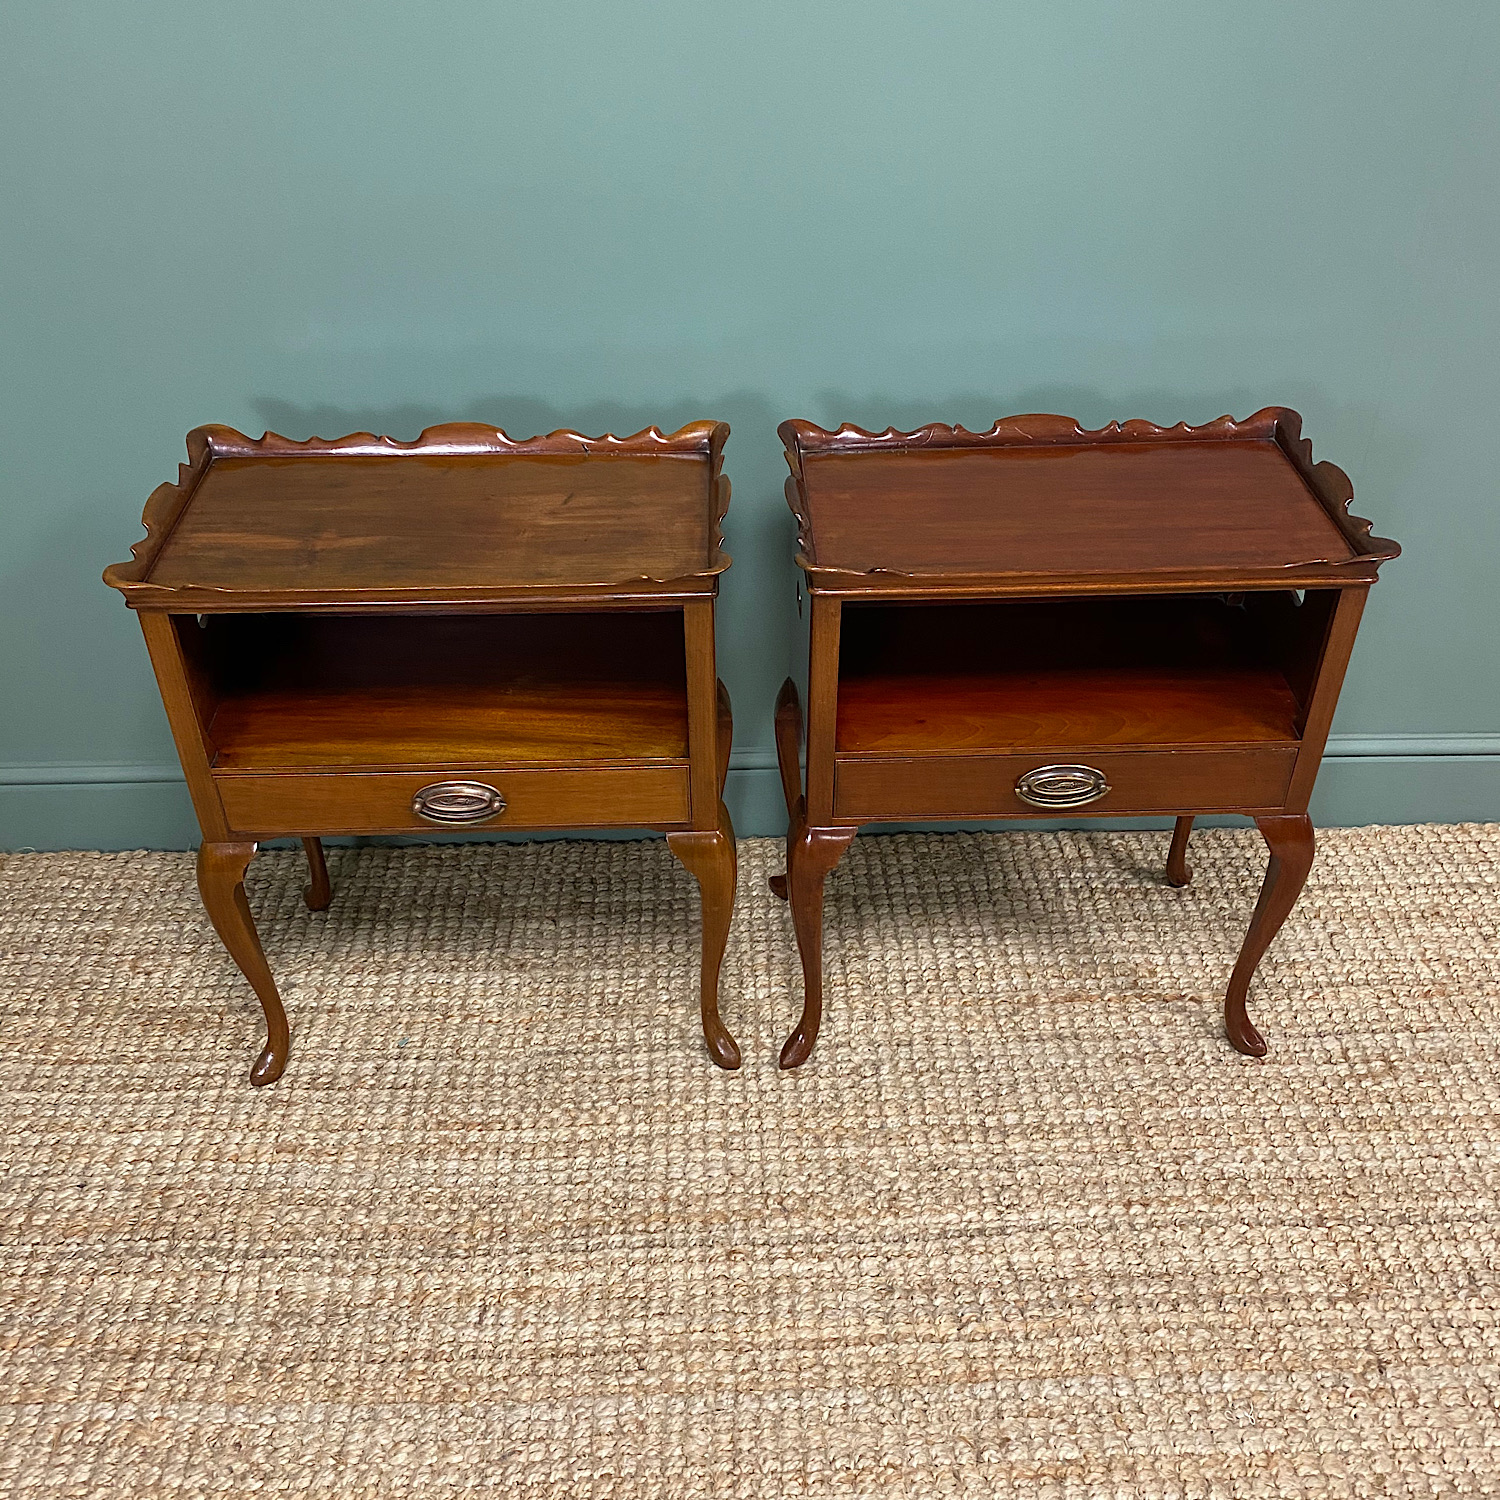 Pair of Edwardian Mahogany Antique Bedside Tables / Cabinets by Morison & Co